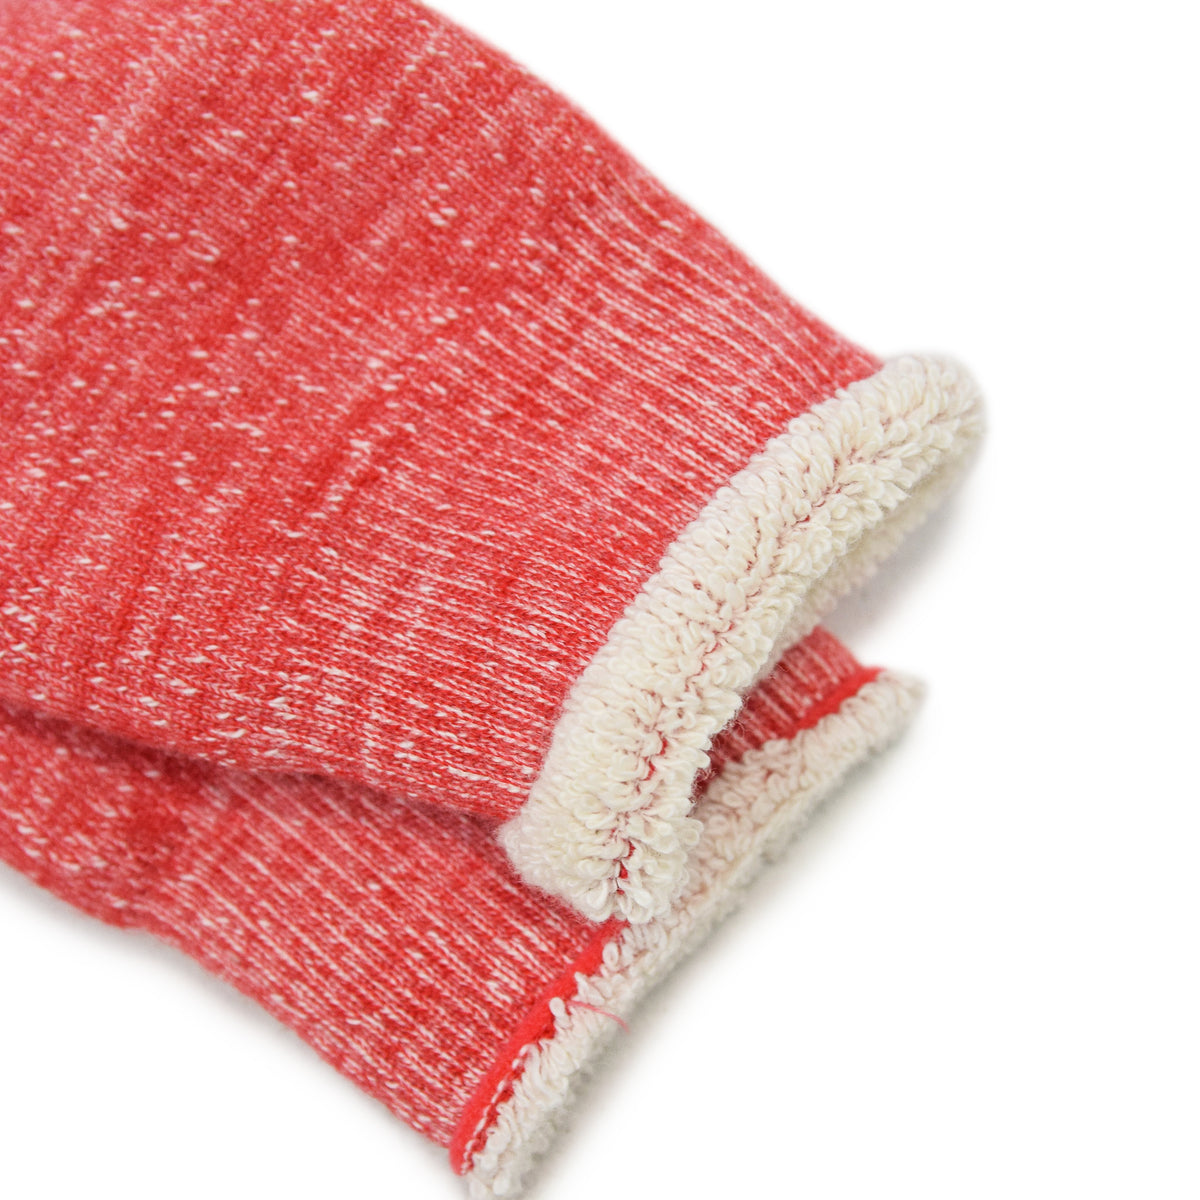 Rototo Double Faced Merino Socks Red Made In Japan Cuff